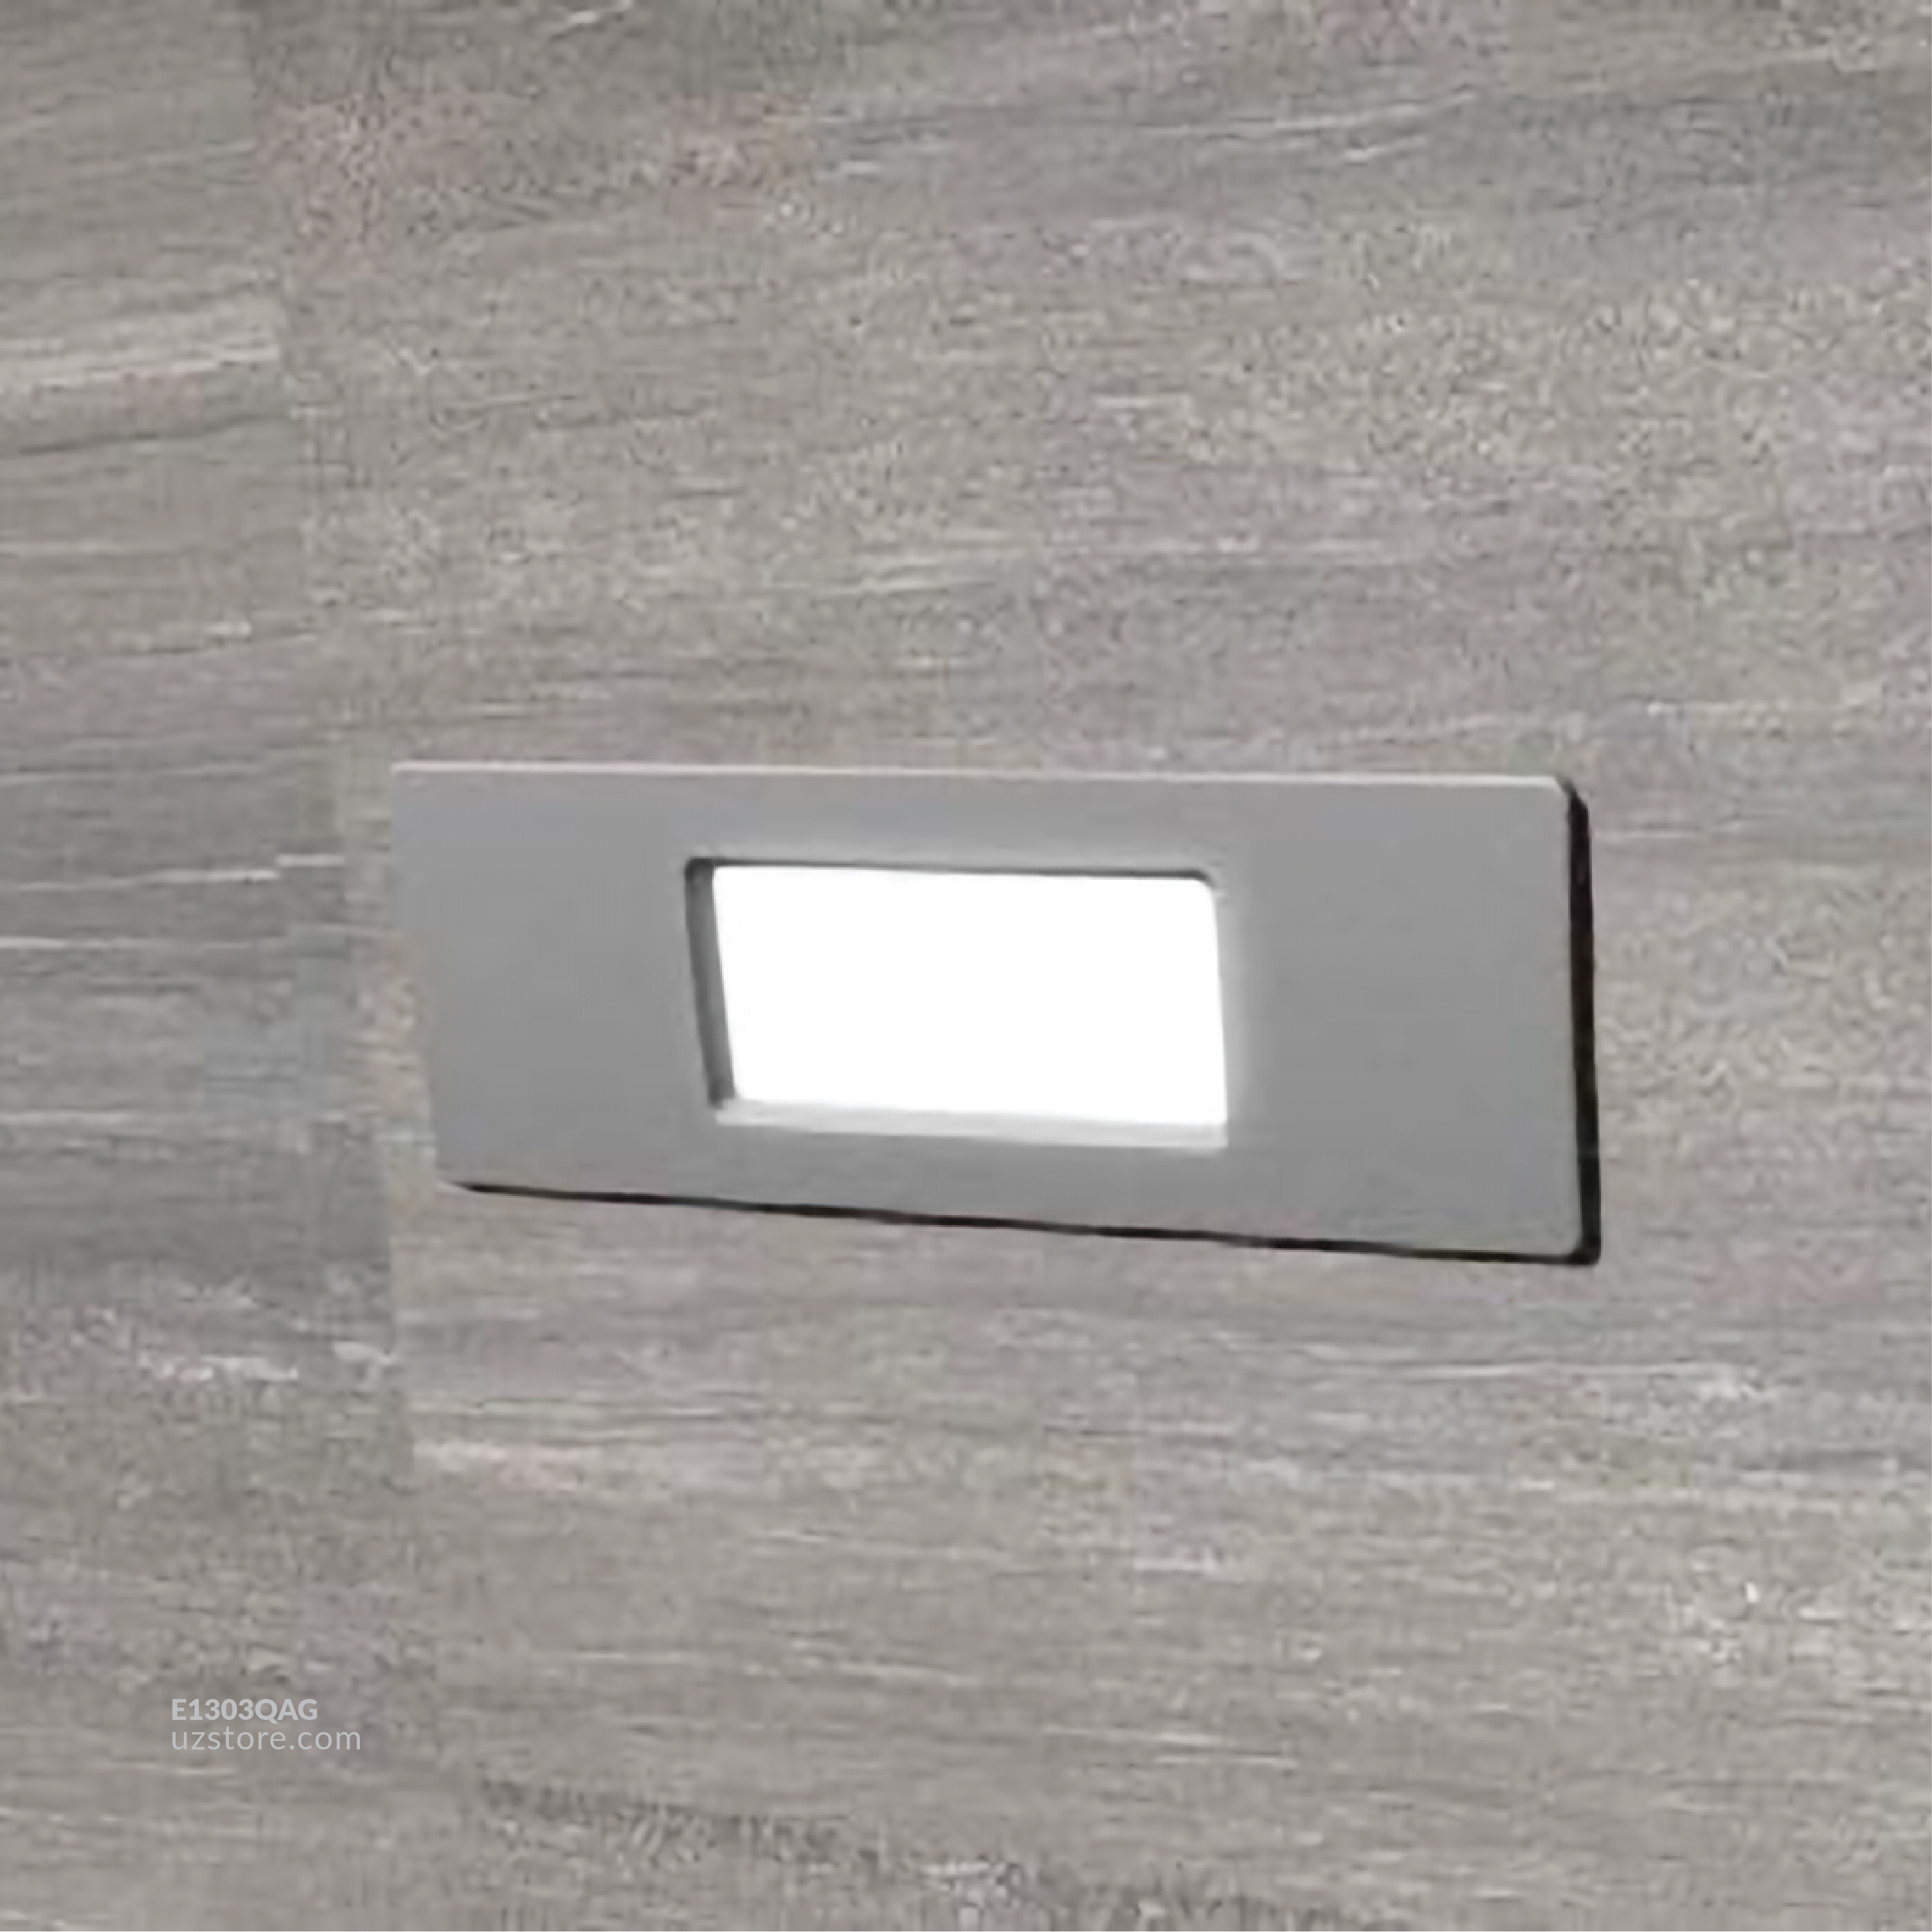 FUMAGALLI NINA 150 OPAL STEP LIGHT R7S 4W 3000K GY Made in Italy